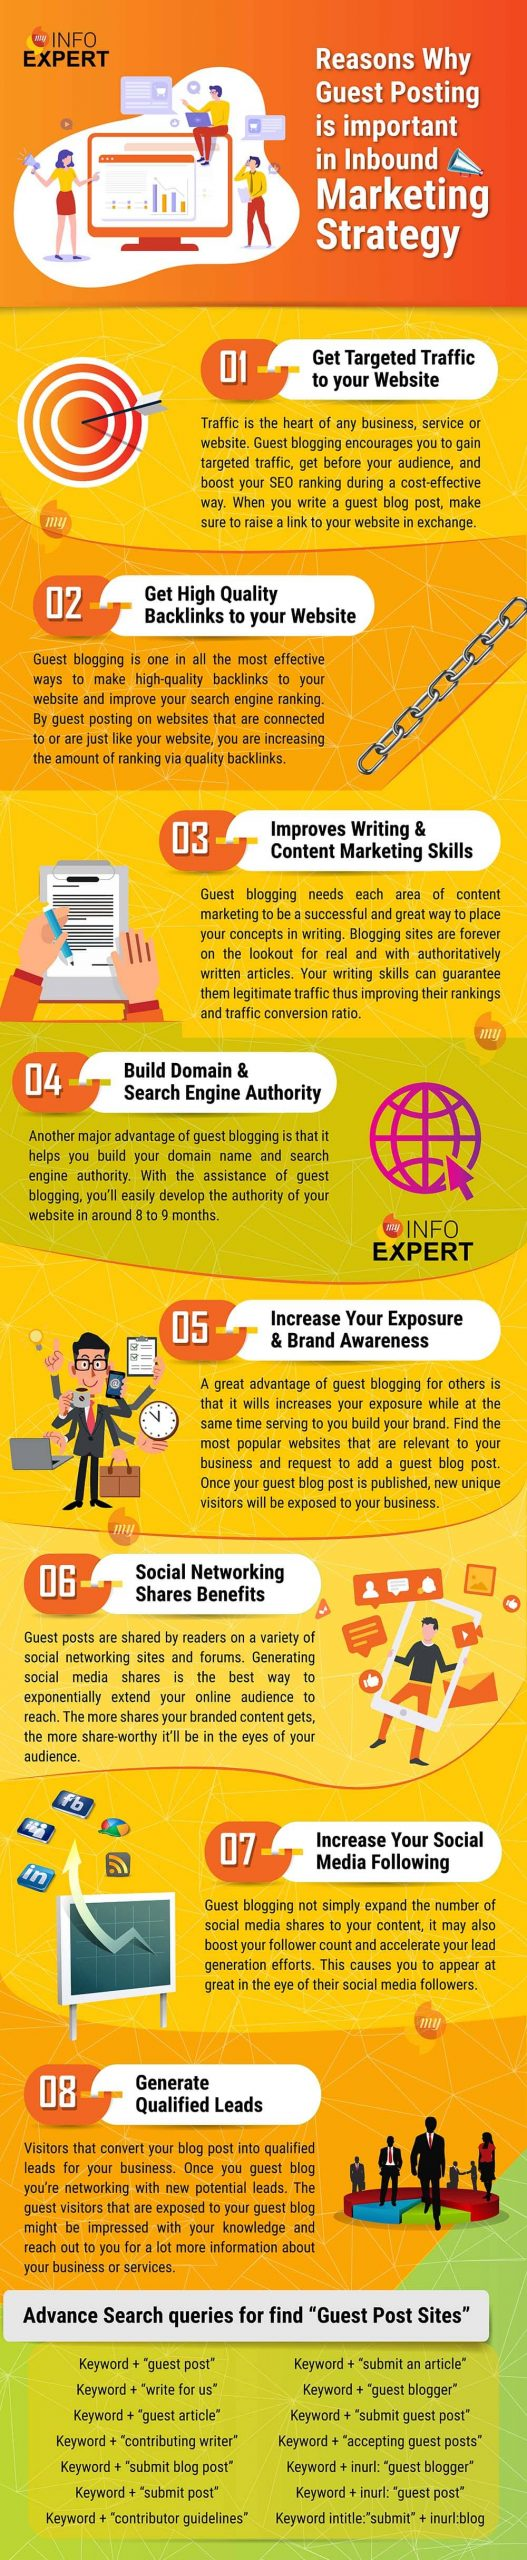 Reasons Why Guest Posting is Important for Inbound Marketing